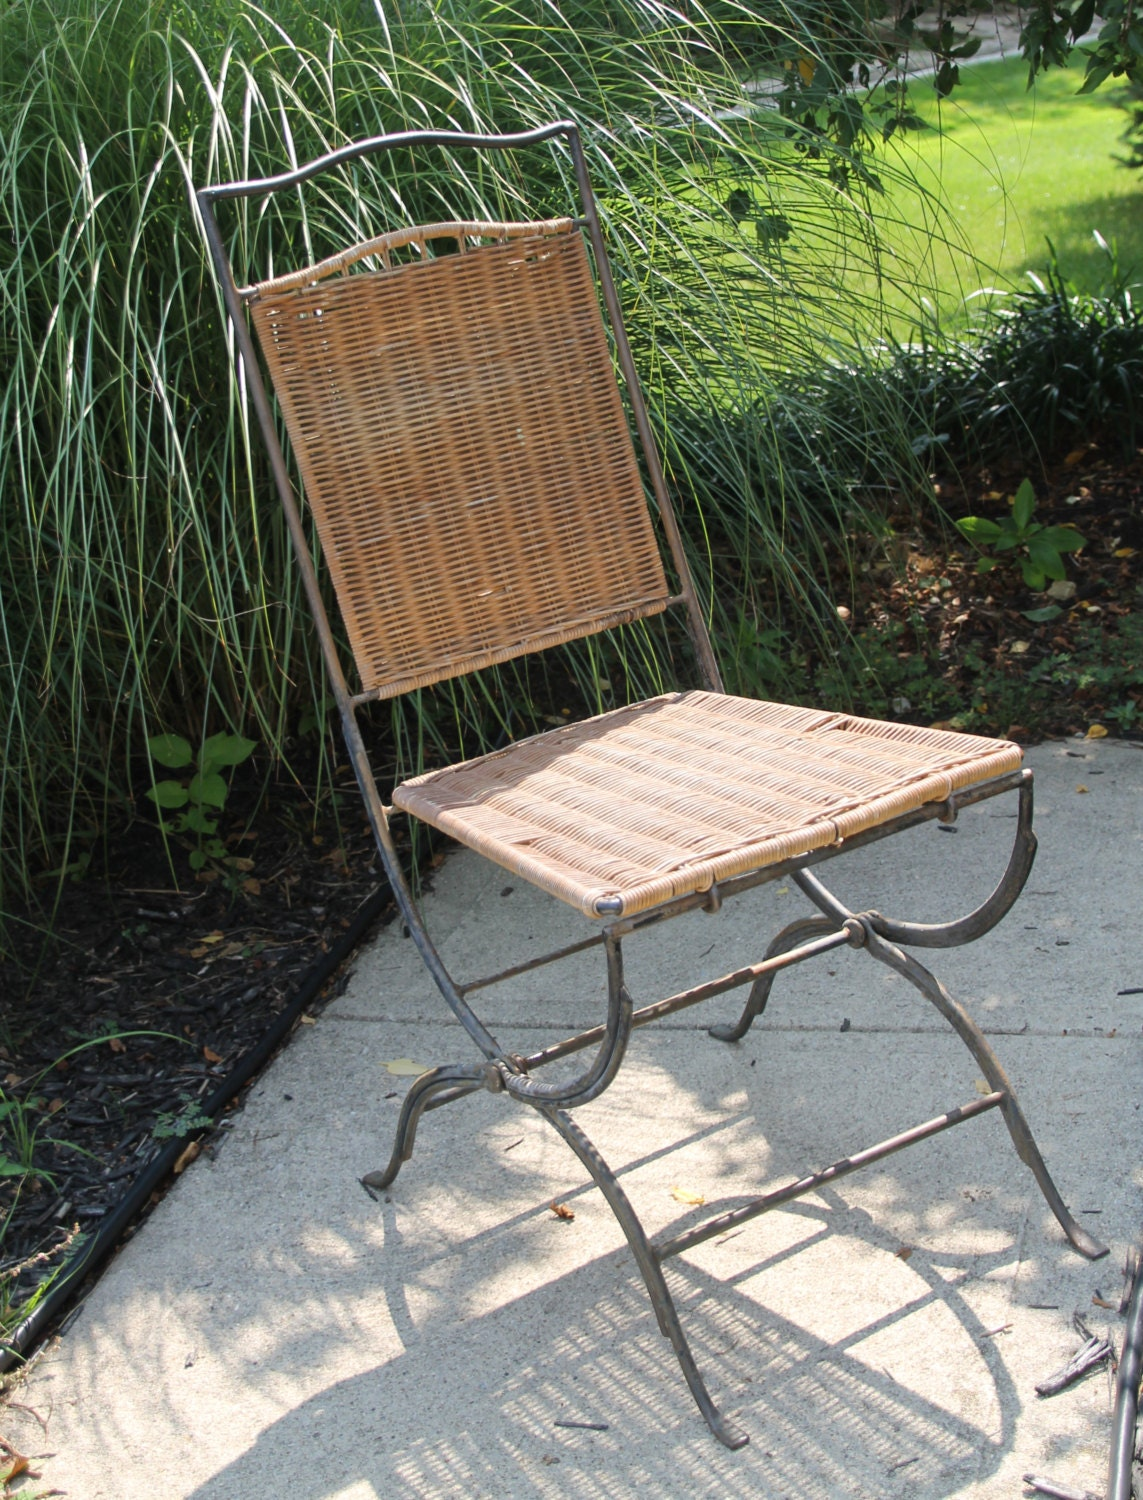 Vintage Wicker Rattan Chair Mid Century Modern Seating With